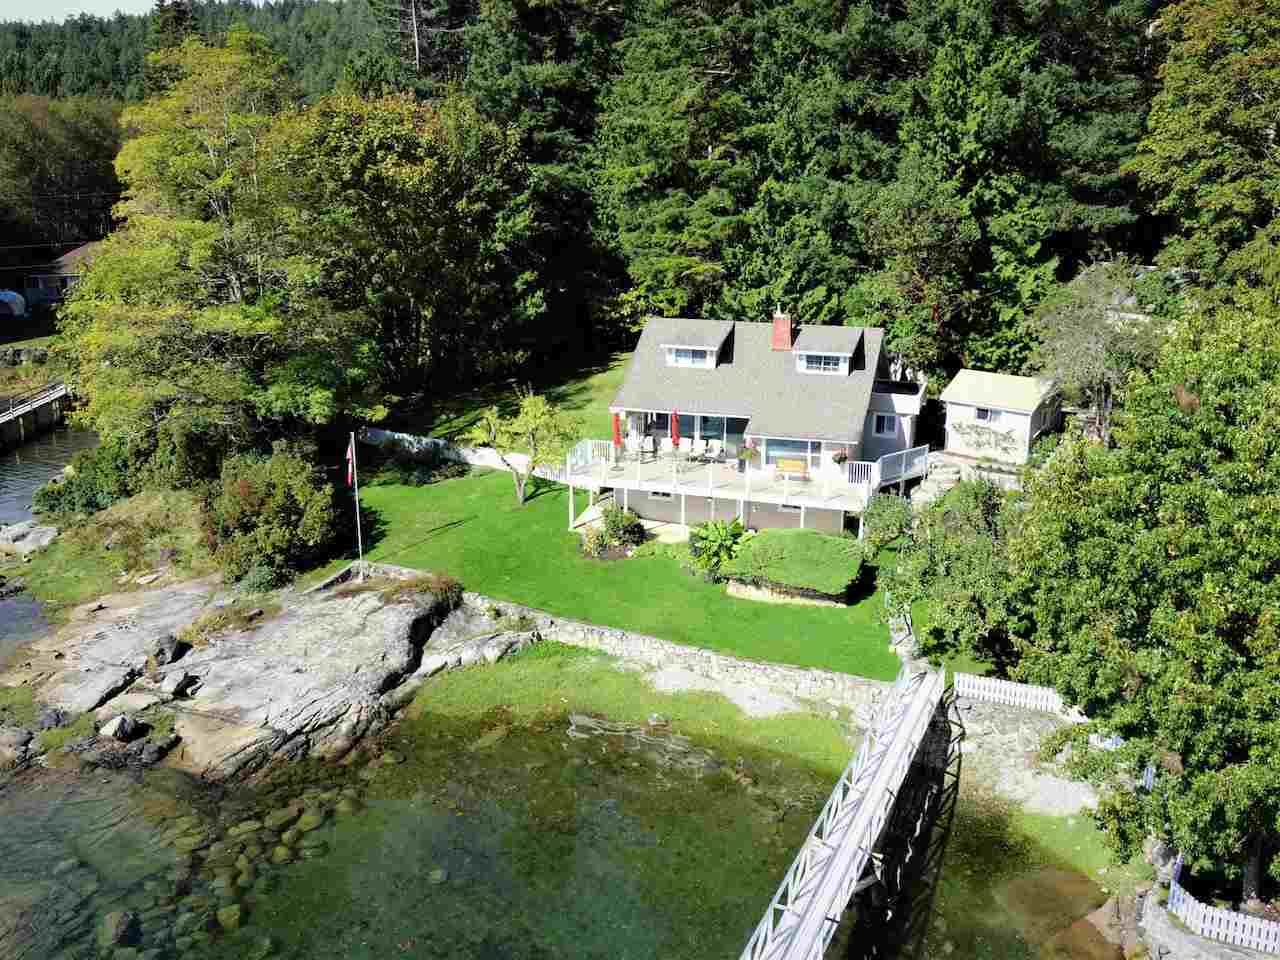 Main Photo: 4760 SINCLAIR BAY Road in Garden Bay: Pender Harbour Egmont House for sale (Sunshine Coast)  : MLS®# R2532705